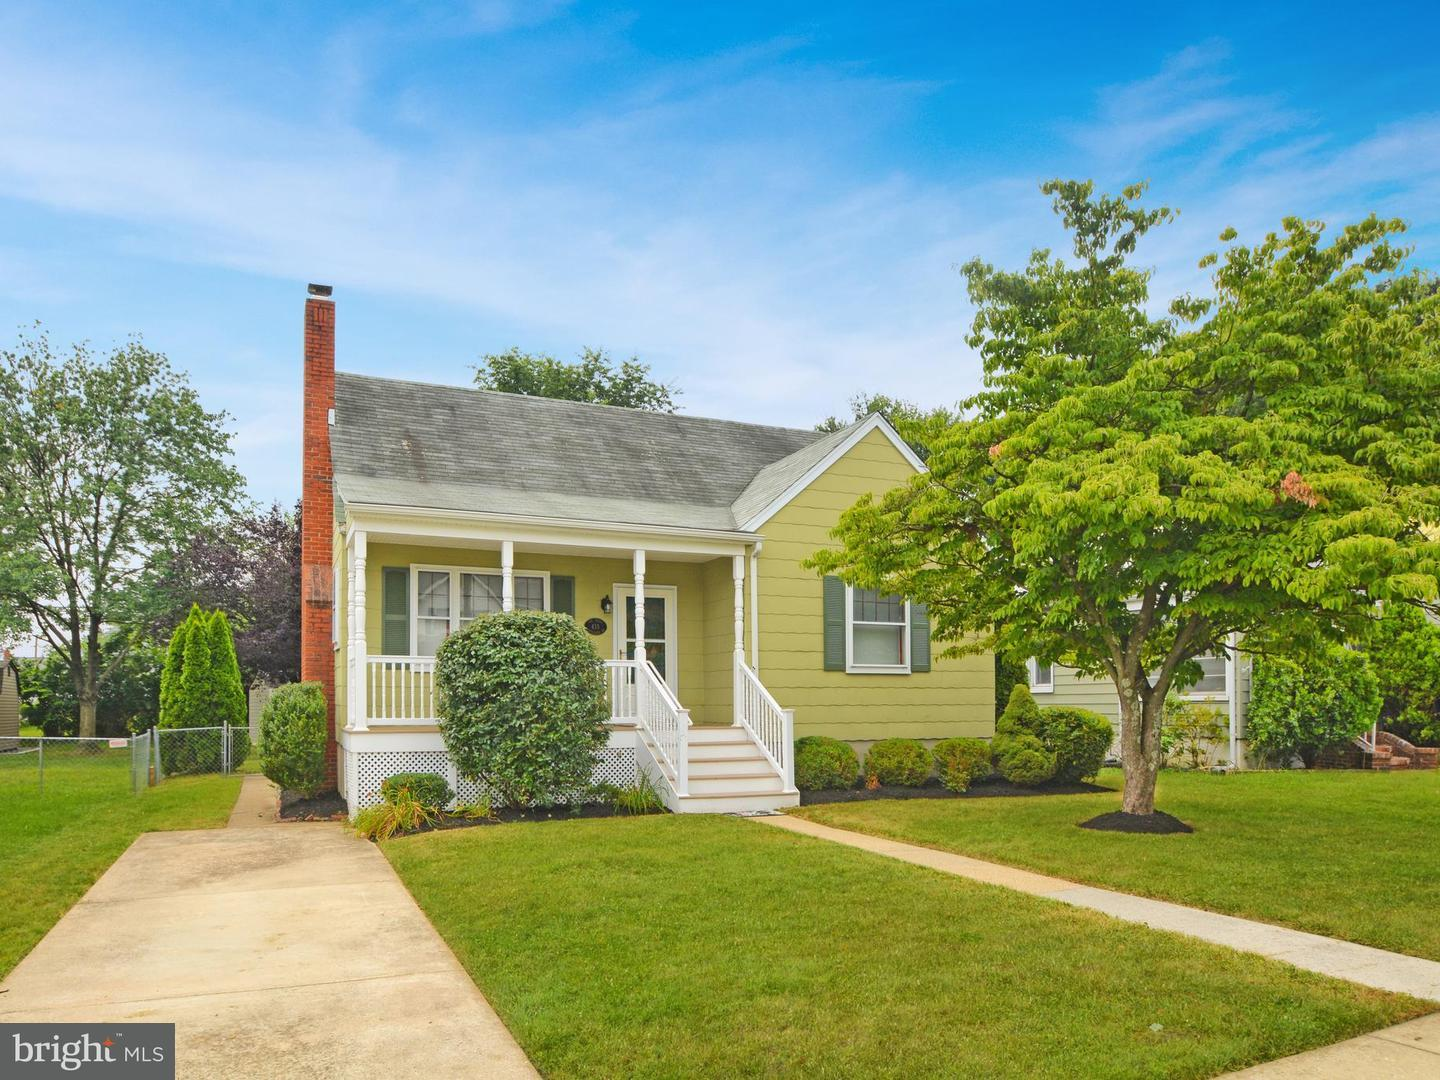 linthicum heights hindu singles Linthicum heights, md single family homes for sale single family homes for sale in linthicum heights, md have a median listing price of $315,000 and a price per square foot of $185.